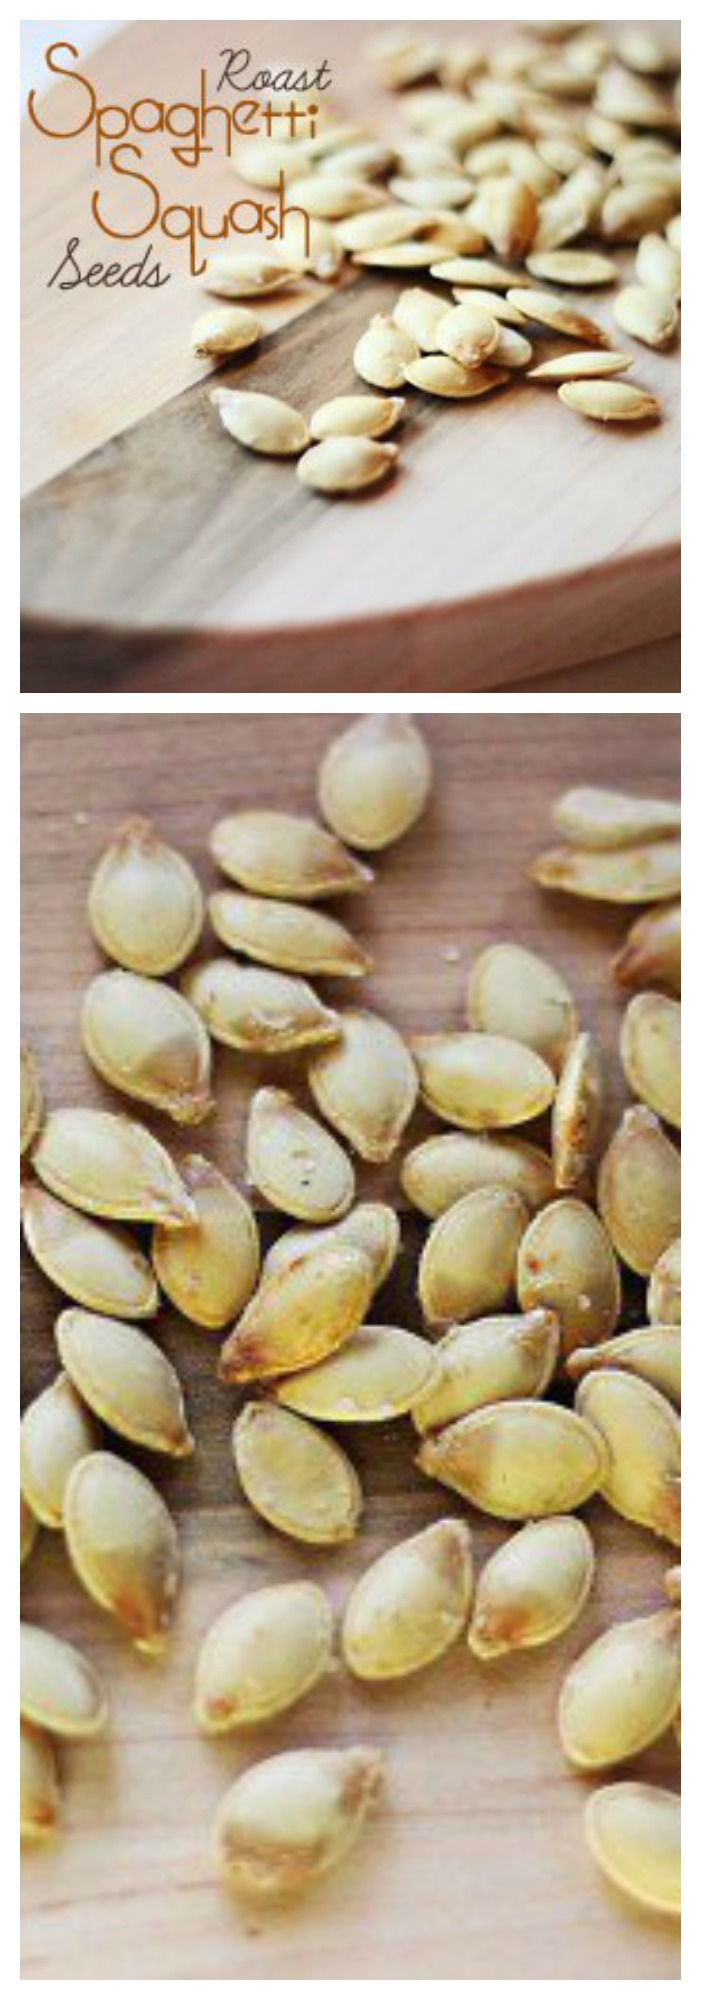 We all love roasted pumpkin seeds, but did you know roast spaghetti squash seeds taste just as good? Don't let them go to waste! They make a great paleo or clean eating snacks.